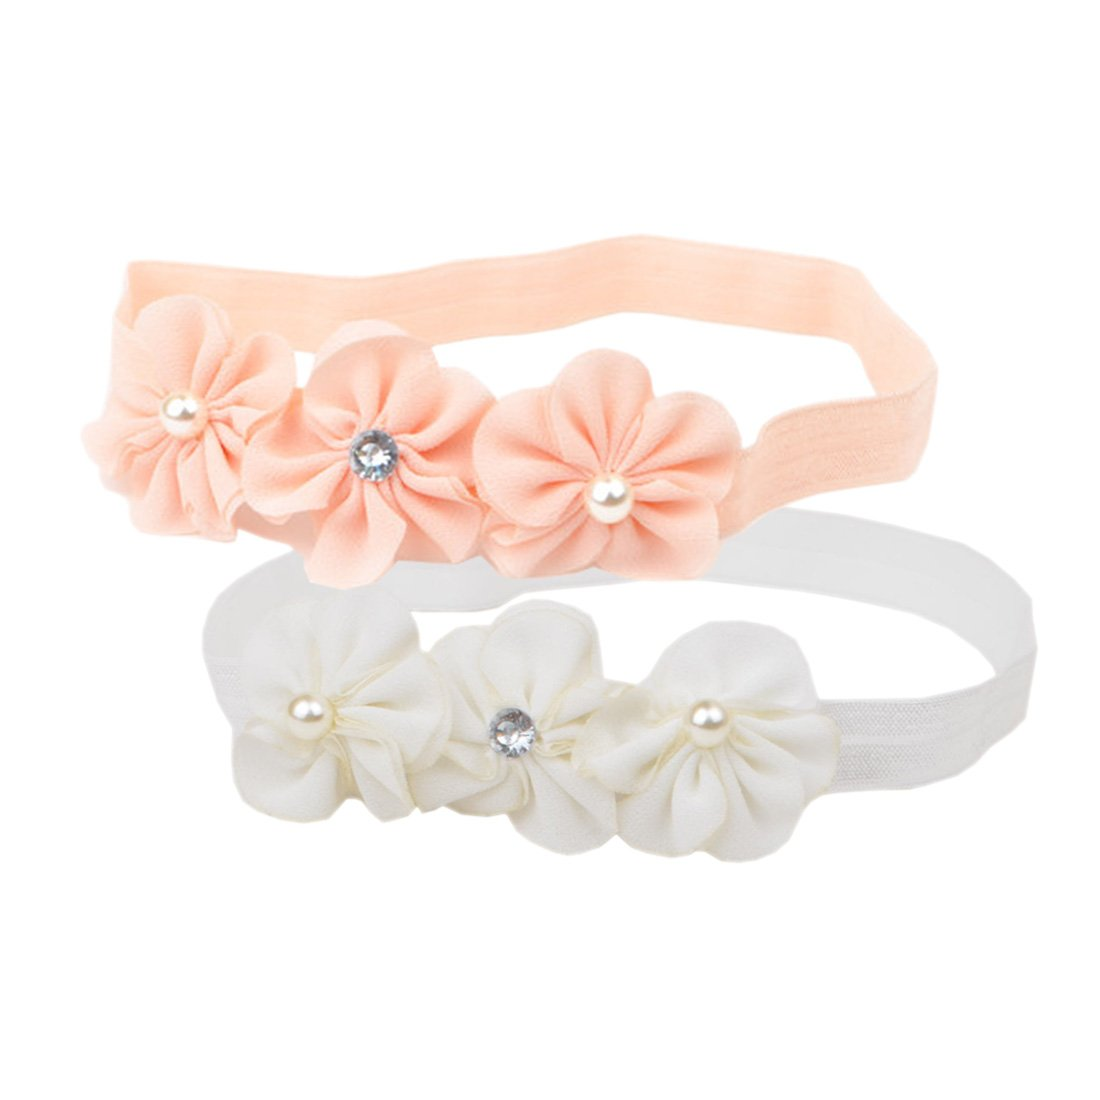 COUXILY Baby's Headband with Grosgrain Ribbon Faux Leather Stars Mouse Ears for Party Photograph(2, CH02-M)